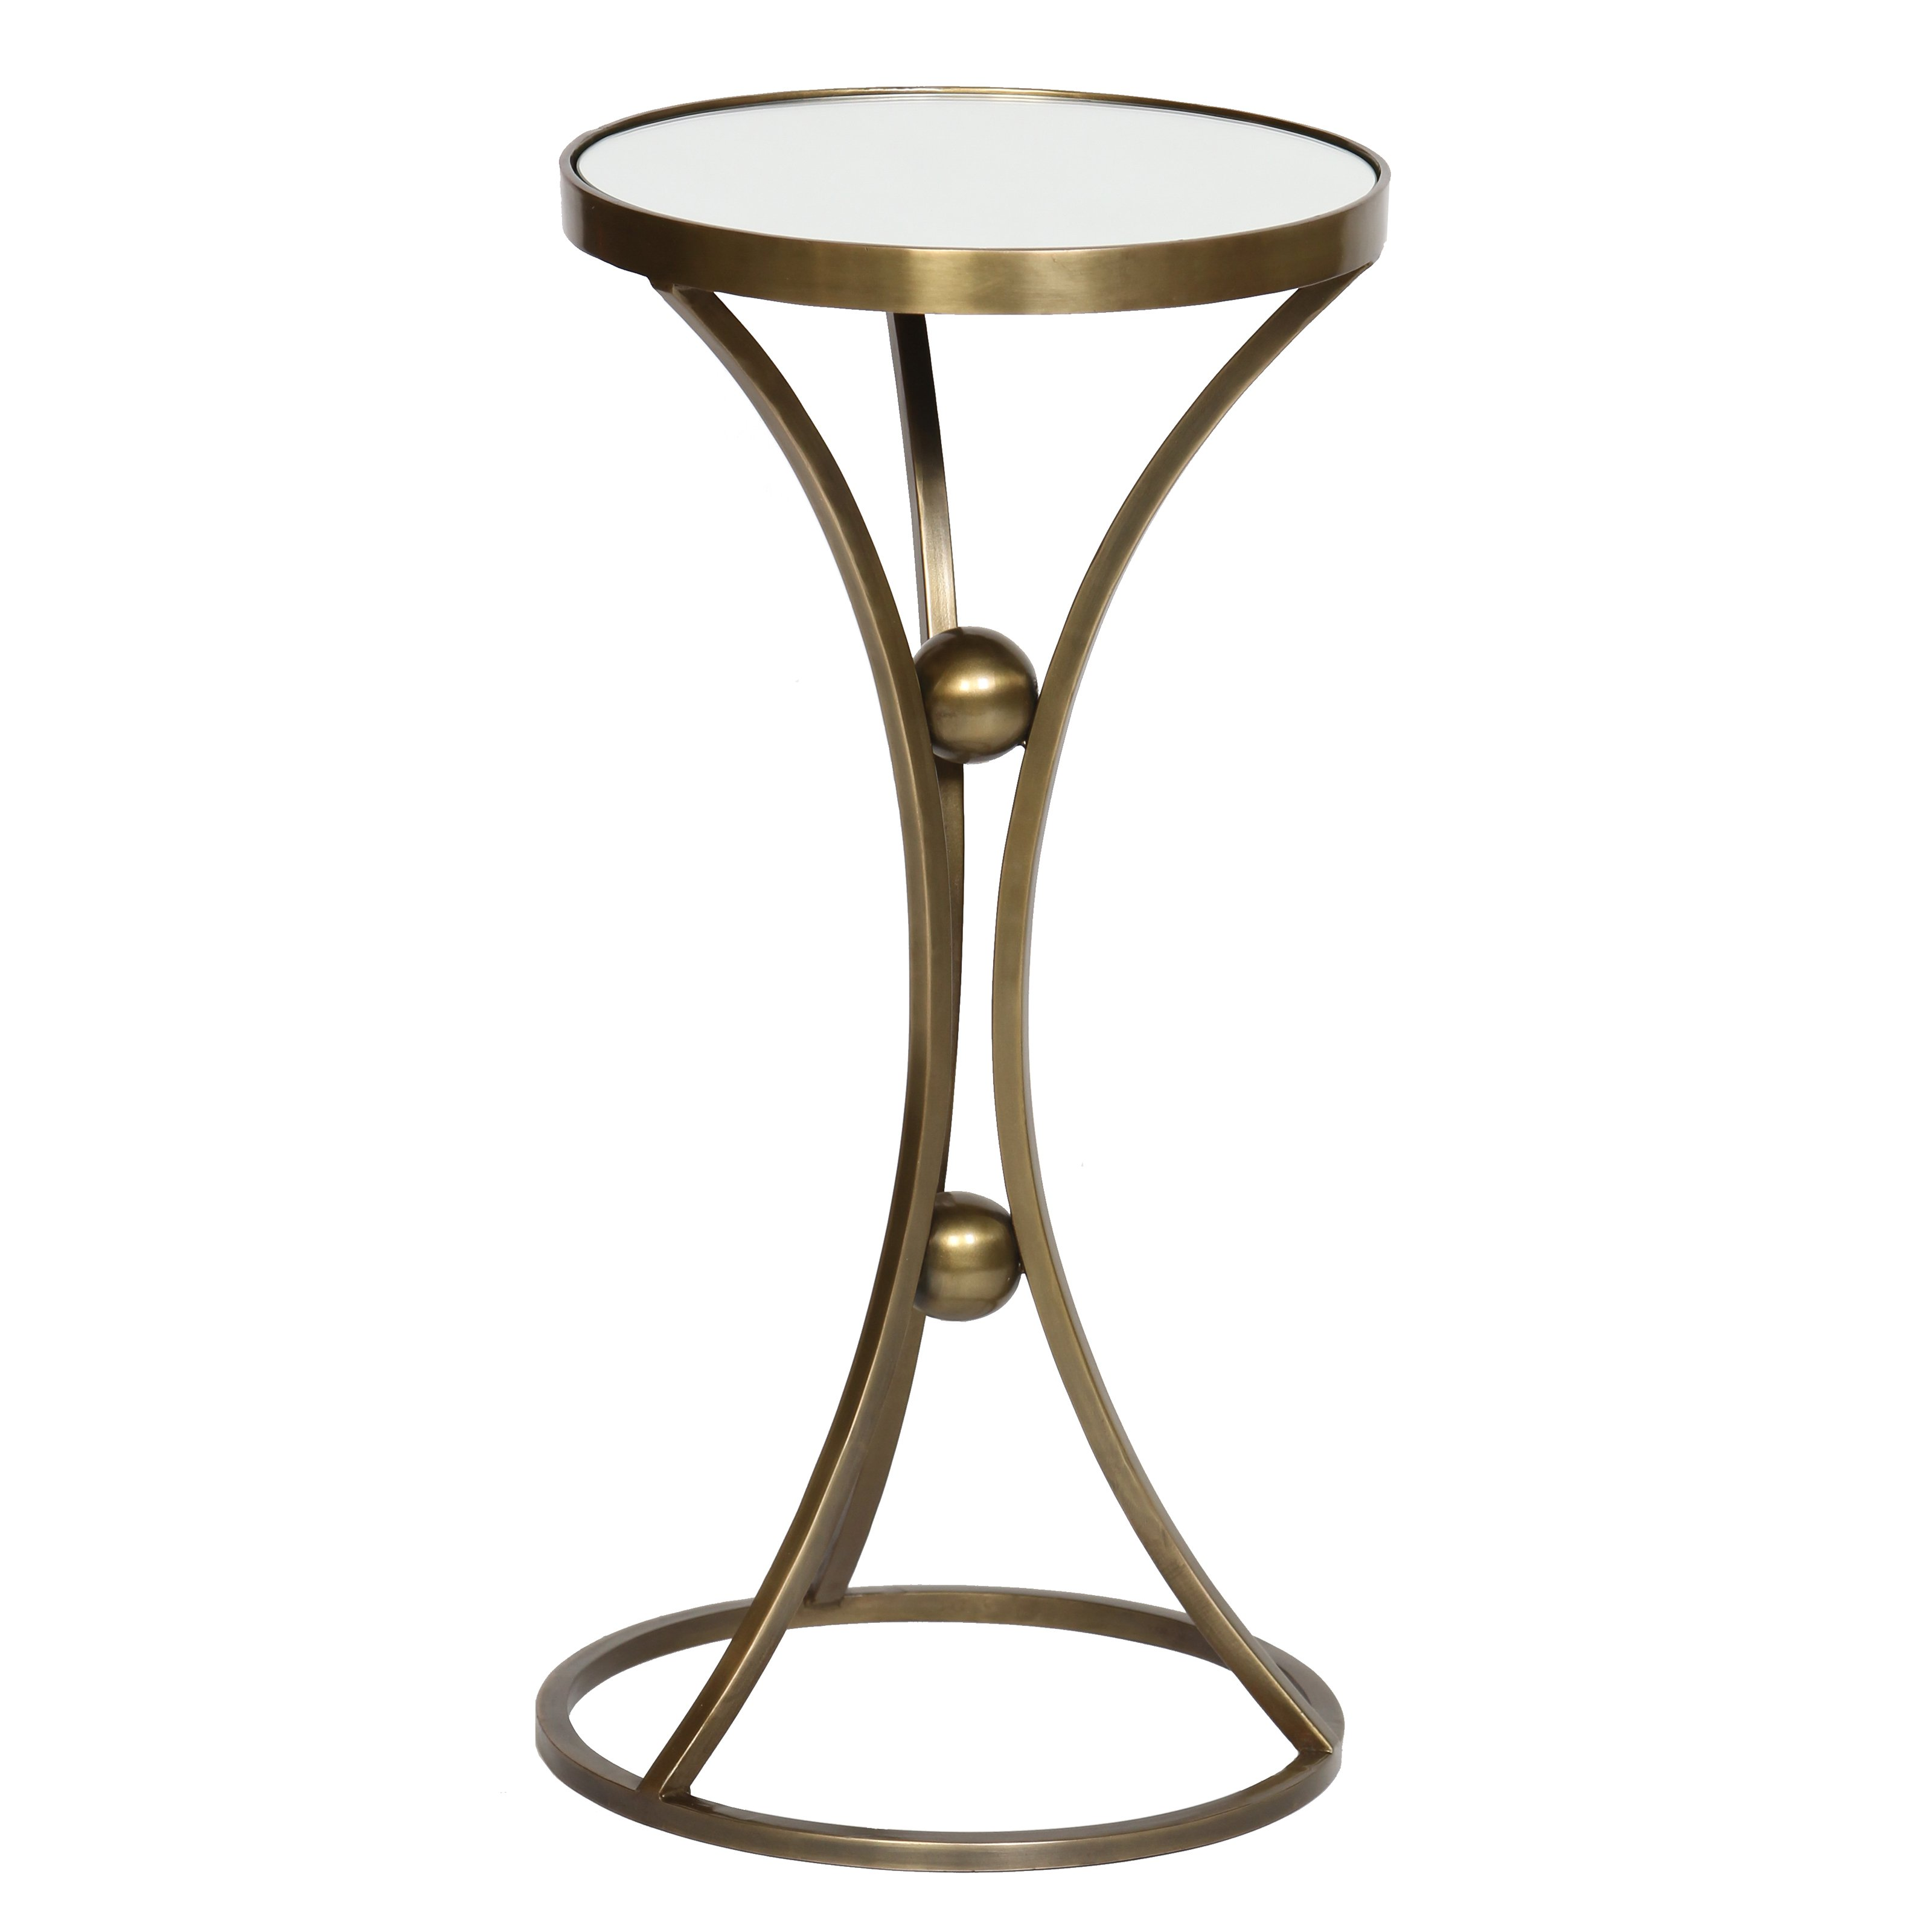 prima legged accent table antique brass metal tables bronze pottery barn legs rustic patio sun shades gray and white coffee contemporary round end homesense bar stools ashley